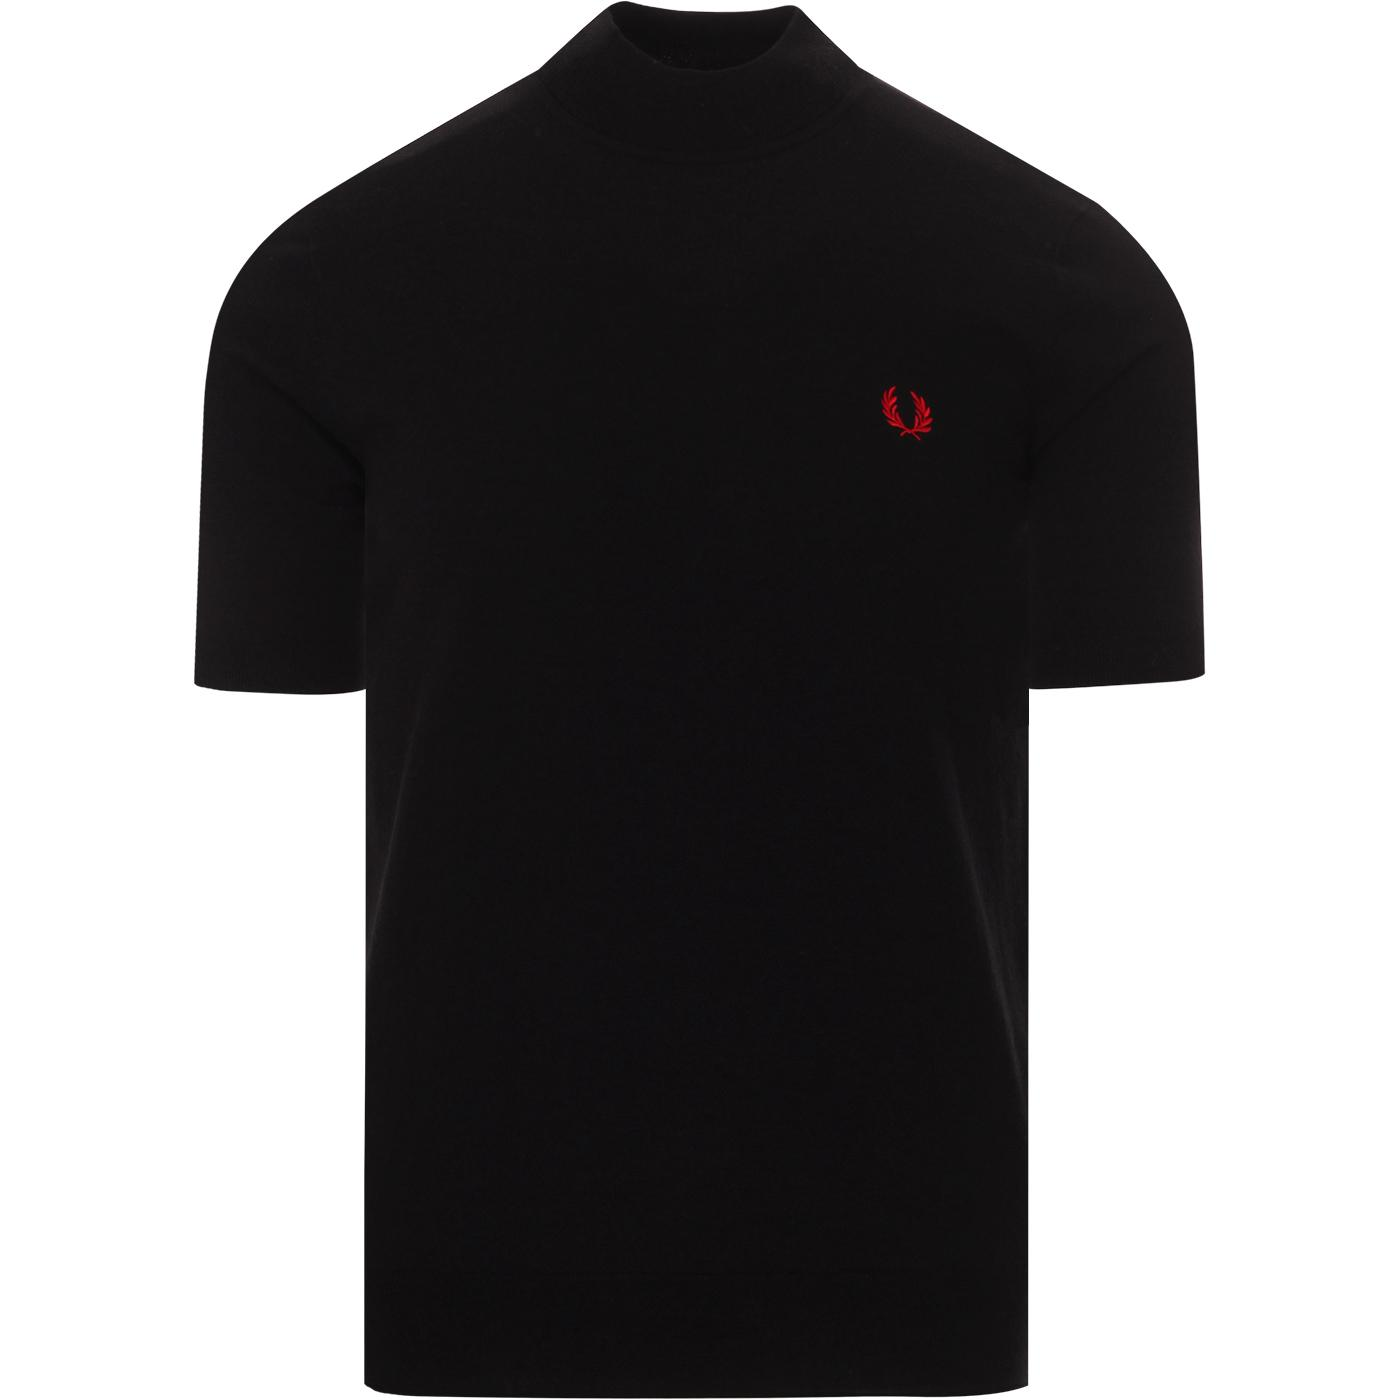 FRED PERRY K8519 Mod Knitted Turtle Neck Tee BLACK